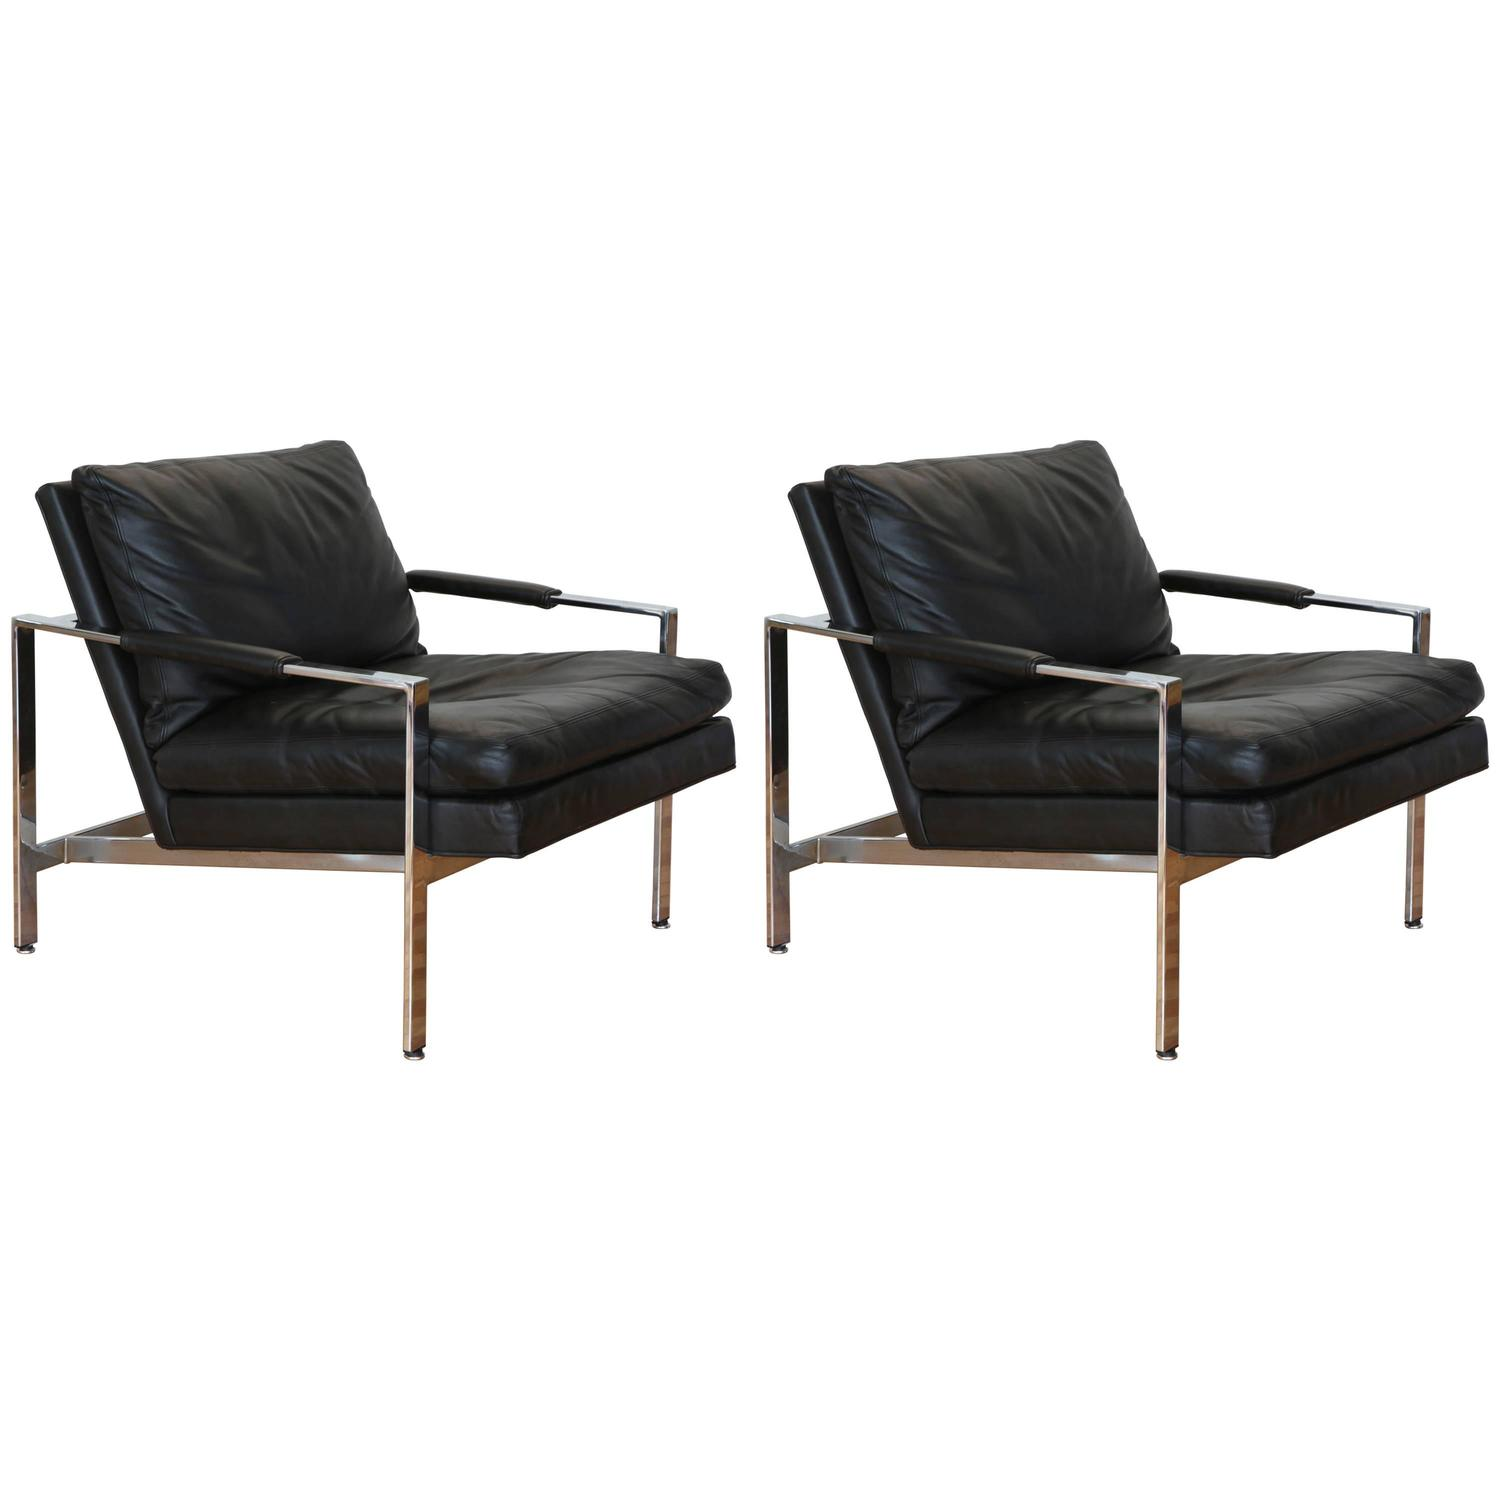 pair of black leather lounge chairs by milo baughman at 1stdibs